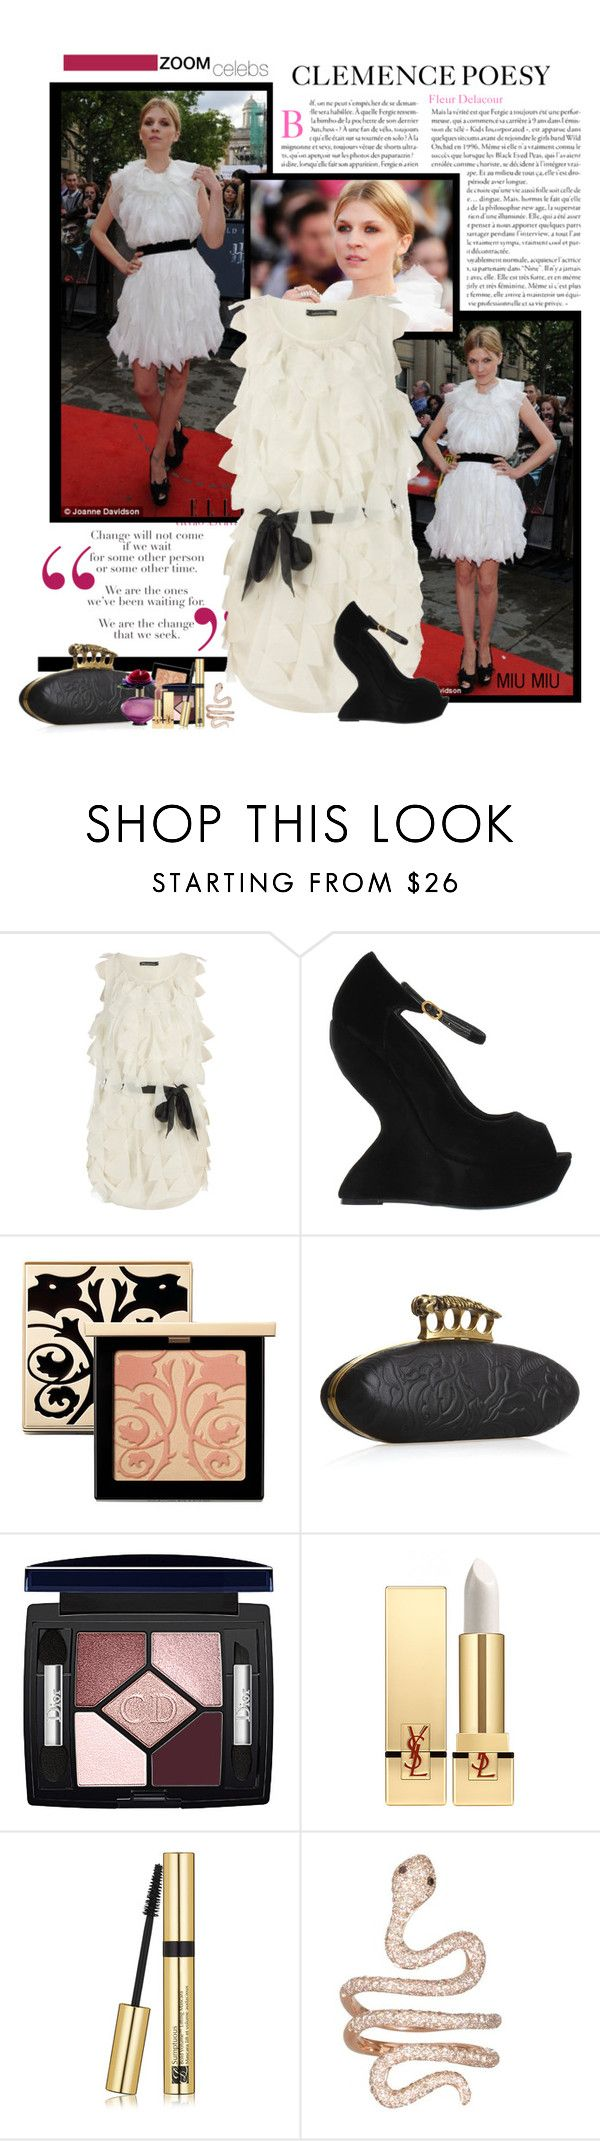 """""""Harry Potter and the deathly hallows (part 2) London premiere - Clemence Poésy"""" by miumiu ❤ liked on Polyvore featuring Fergie, Ultimo, Emma Watson, Dorothy Perkins, Alexander McQueen, Clarins, Marc Jacobs, Christian Dior, Yves Saint Laurent and Estée Lauder"""